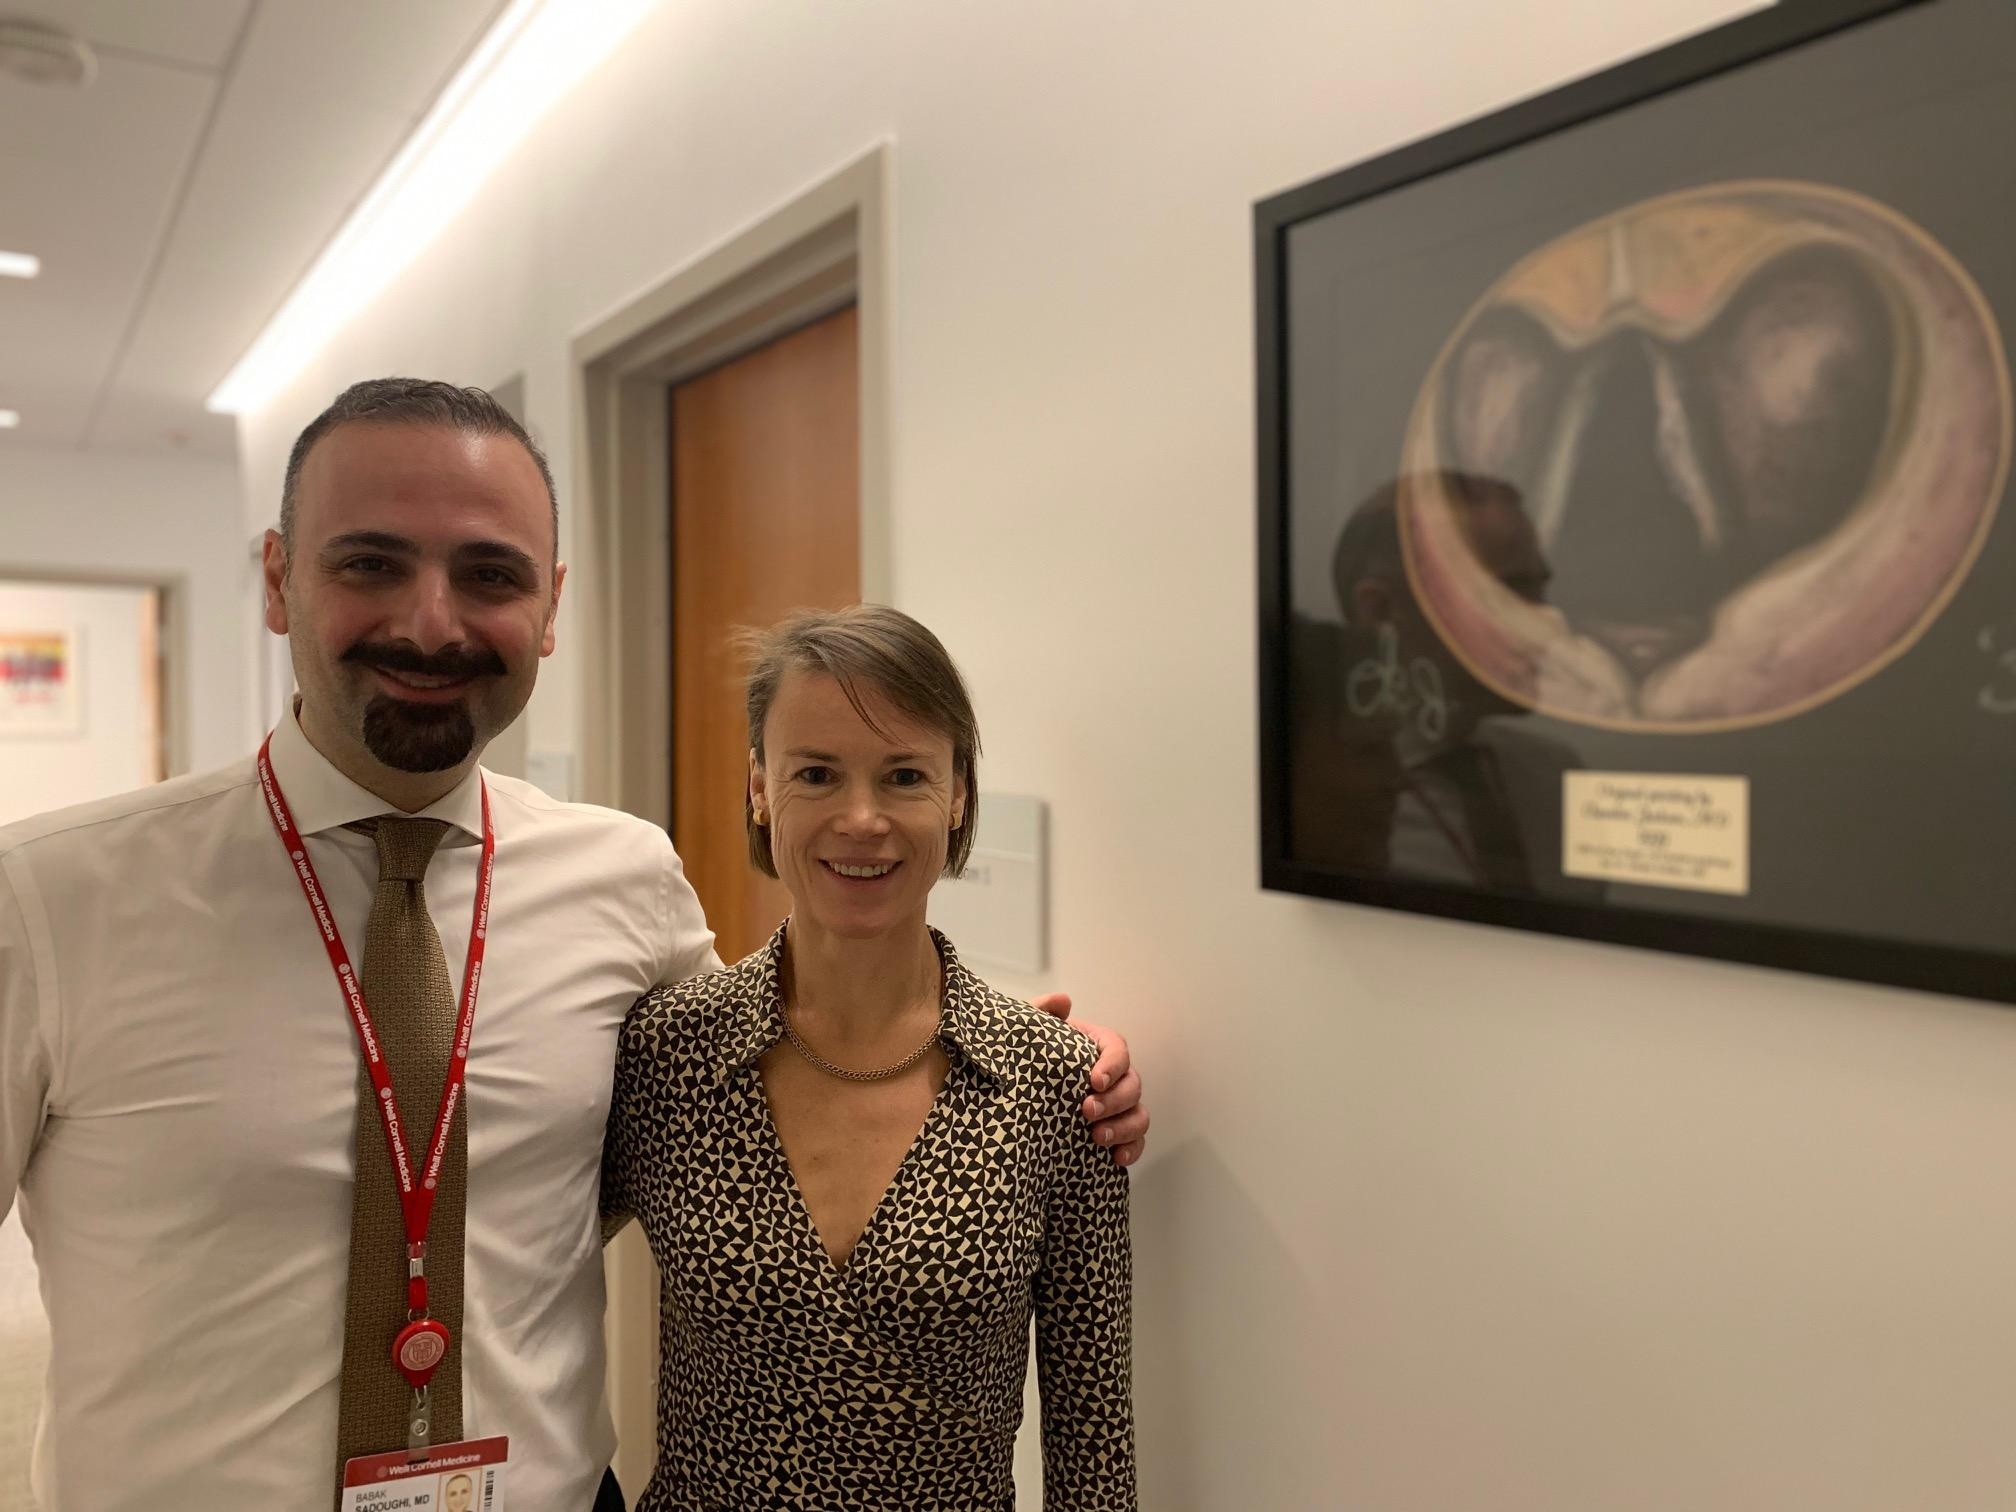 Babak Sadoughi, MD and Kate Heathcote MBBS, MRCS at the Sean Parker Institute for the Voice in Manhattan